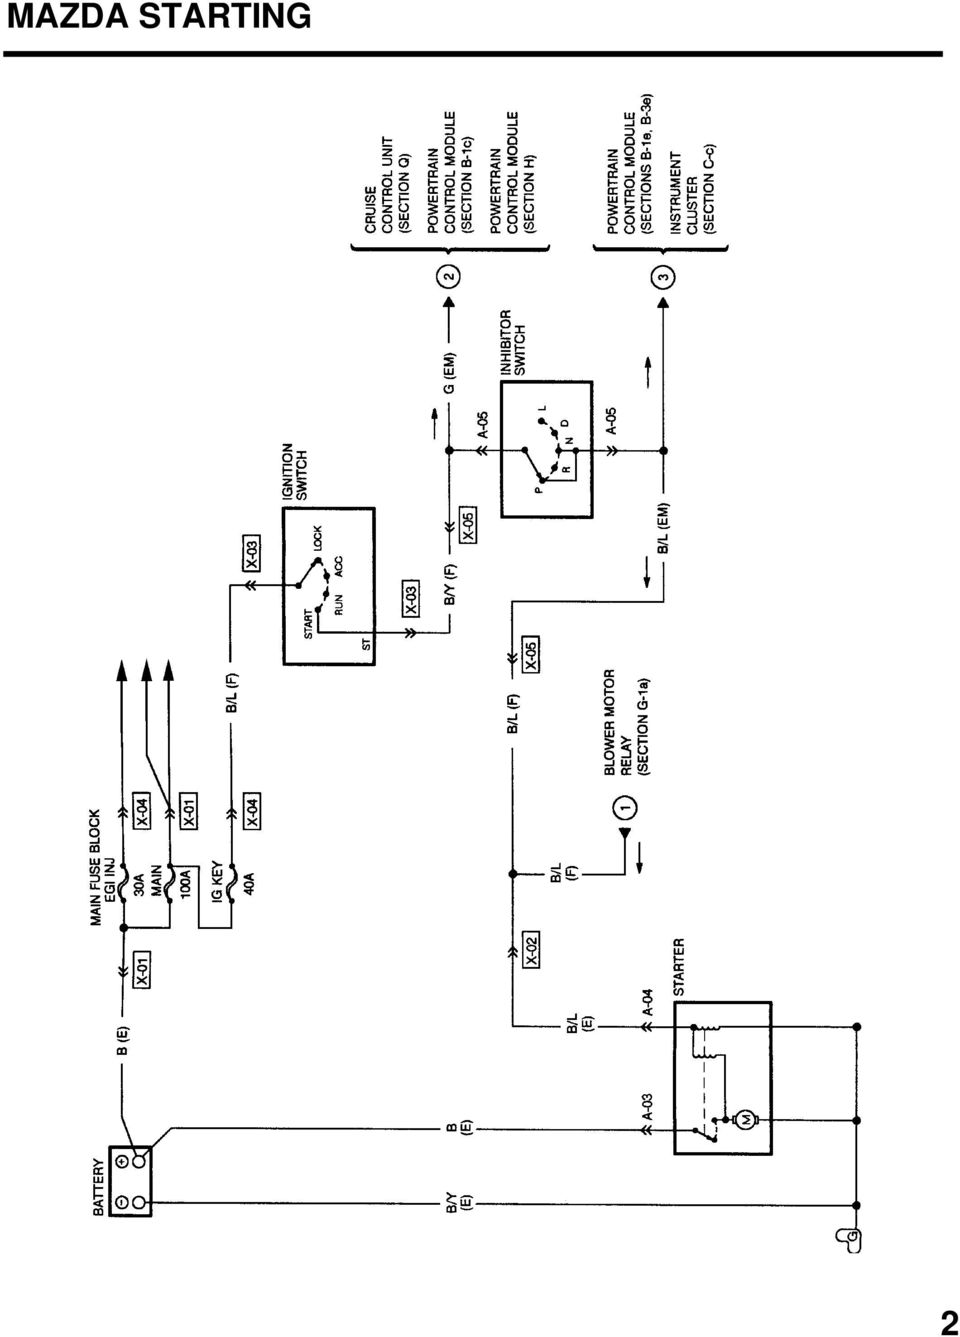 Practice Electrical Wiring Diagrams Pdf 1955 Chevy Turn Signal Diagram Free Download 2